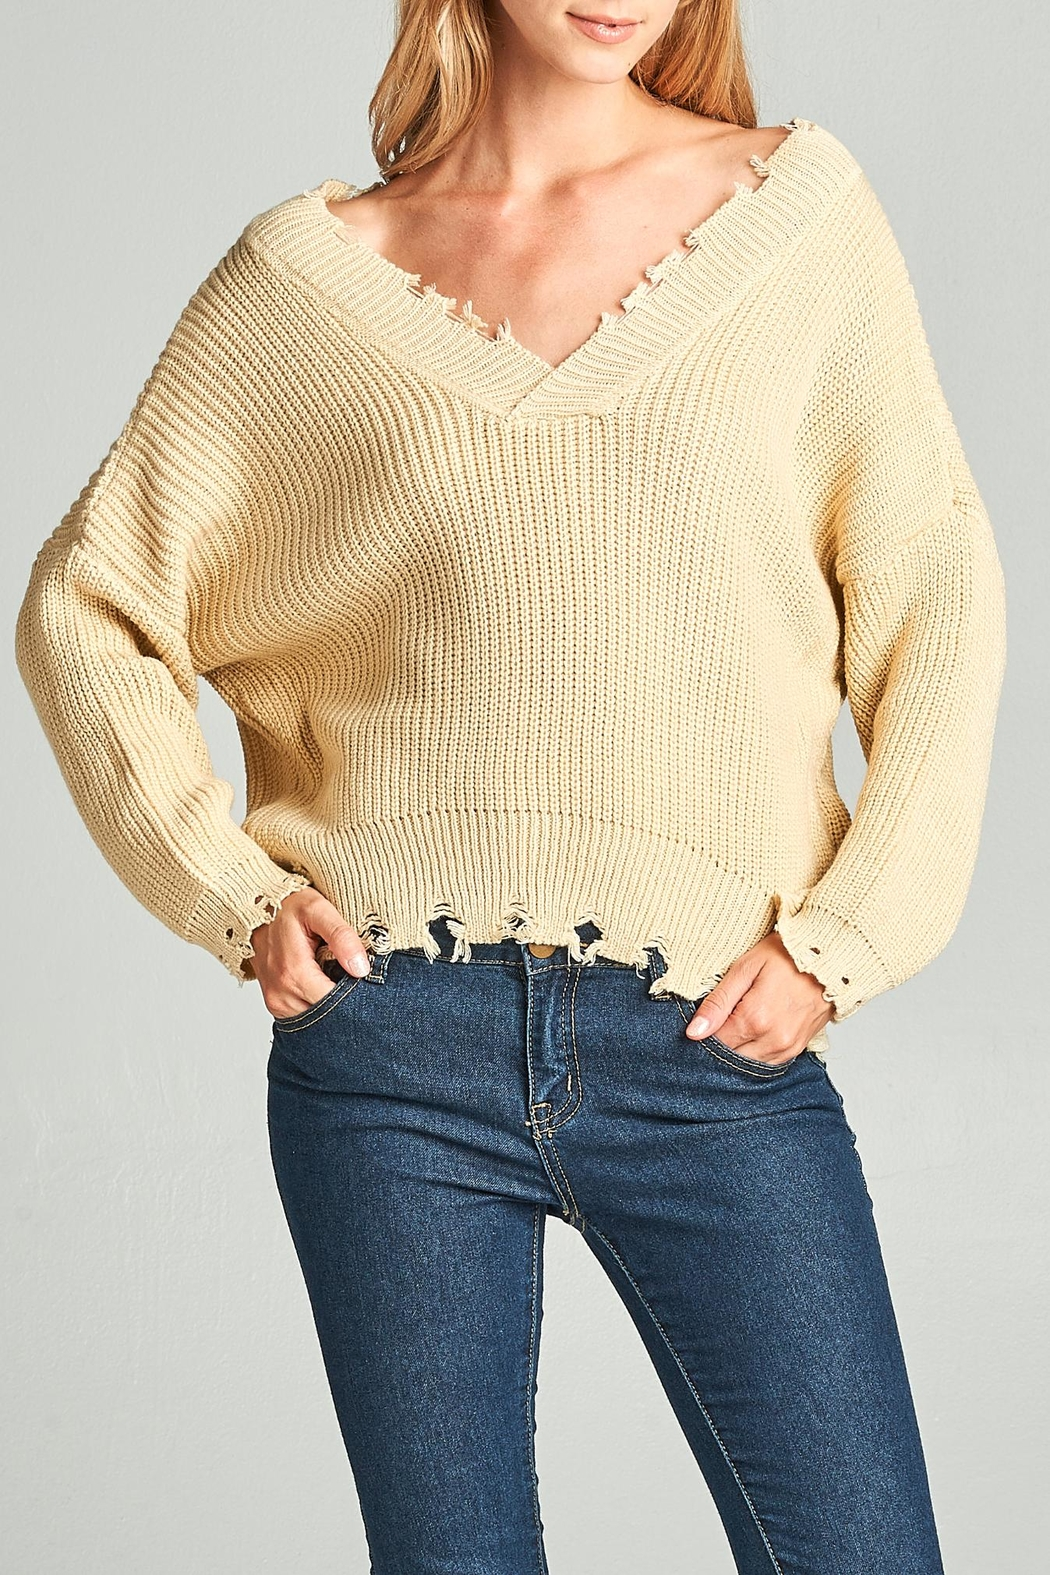 Racine Oversize Frayed Sweater - Main Image